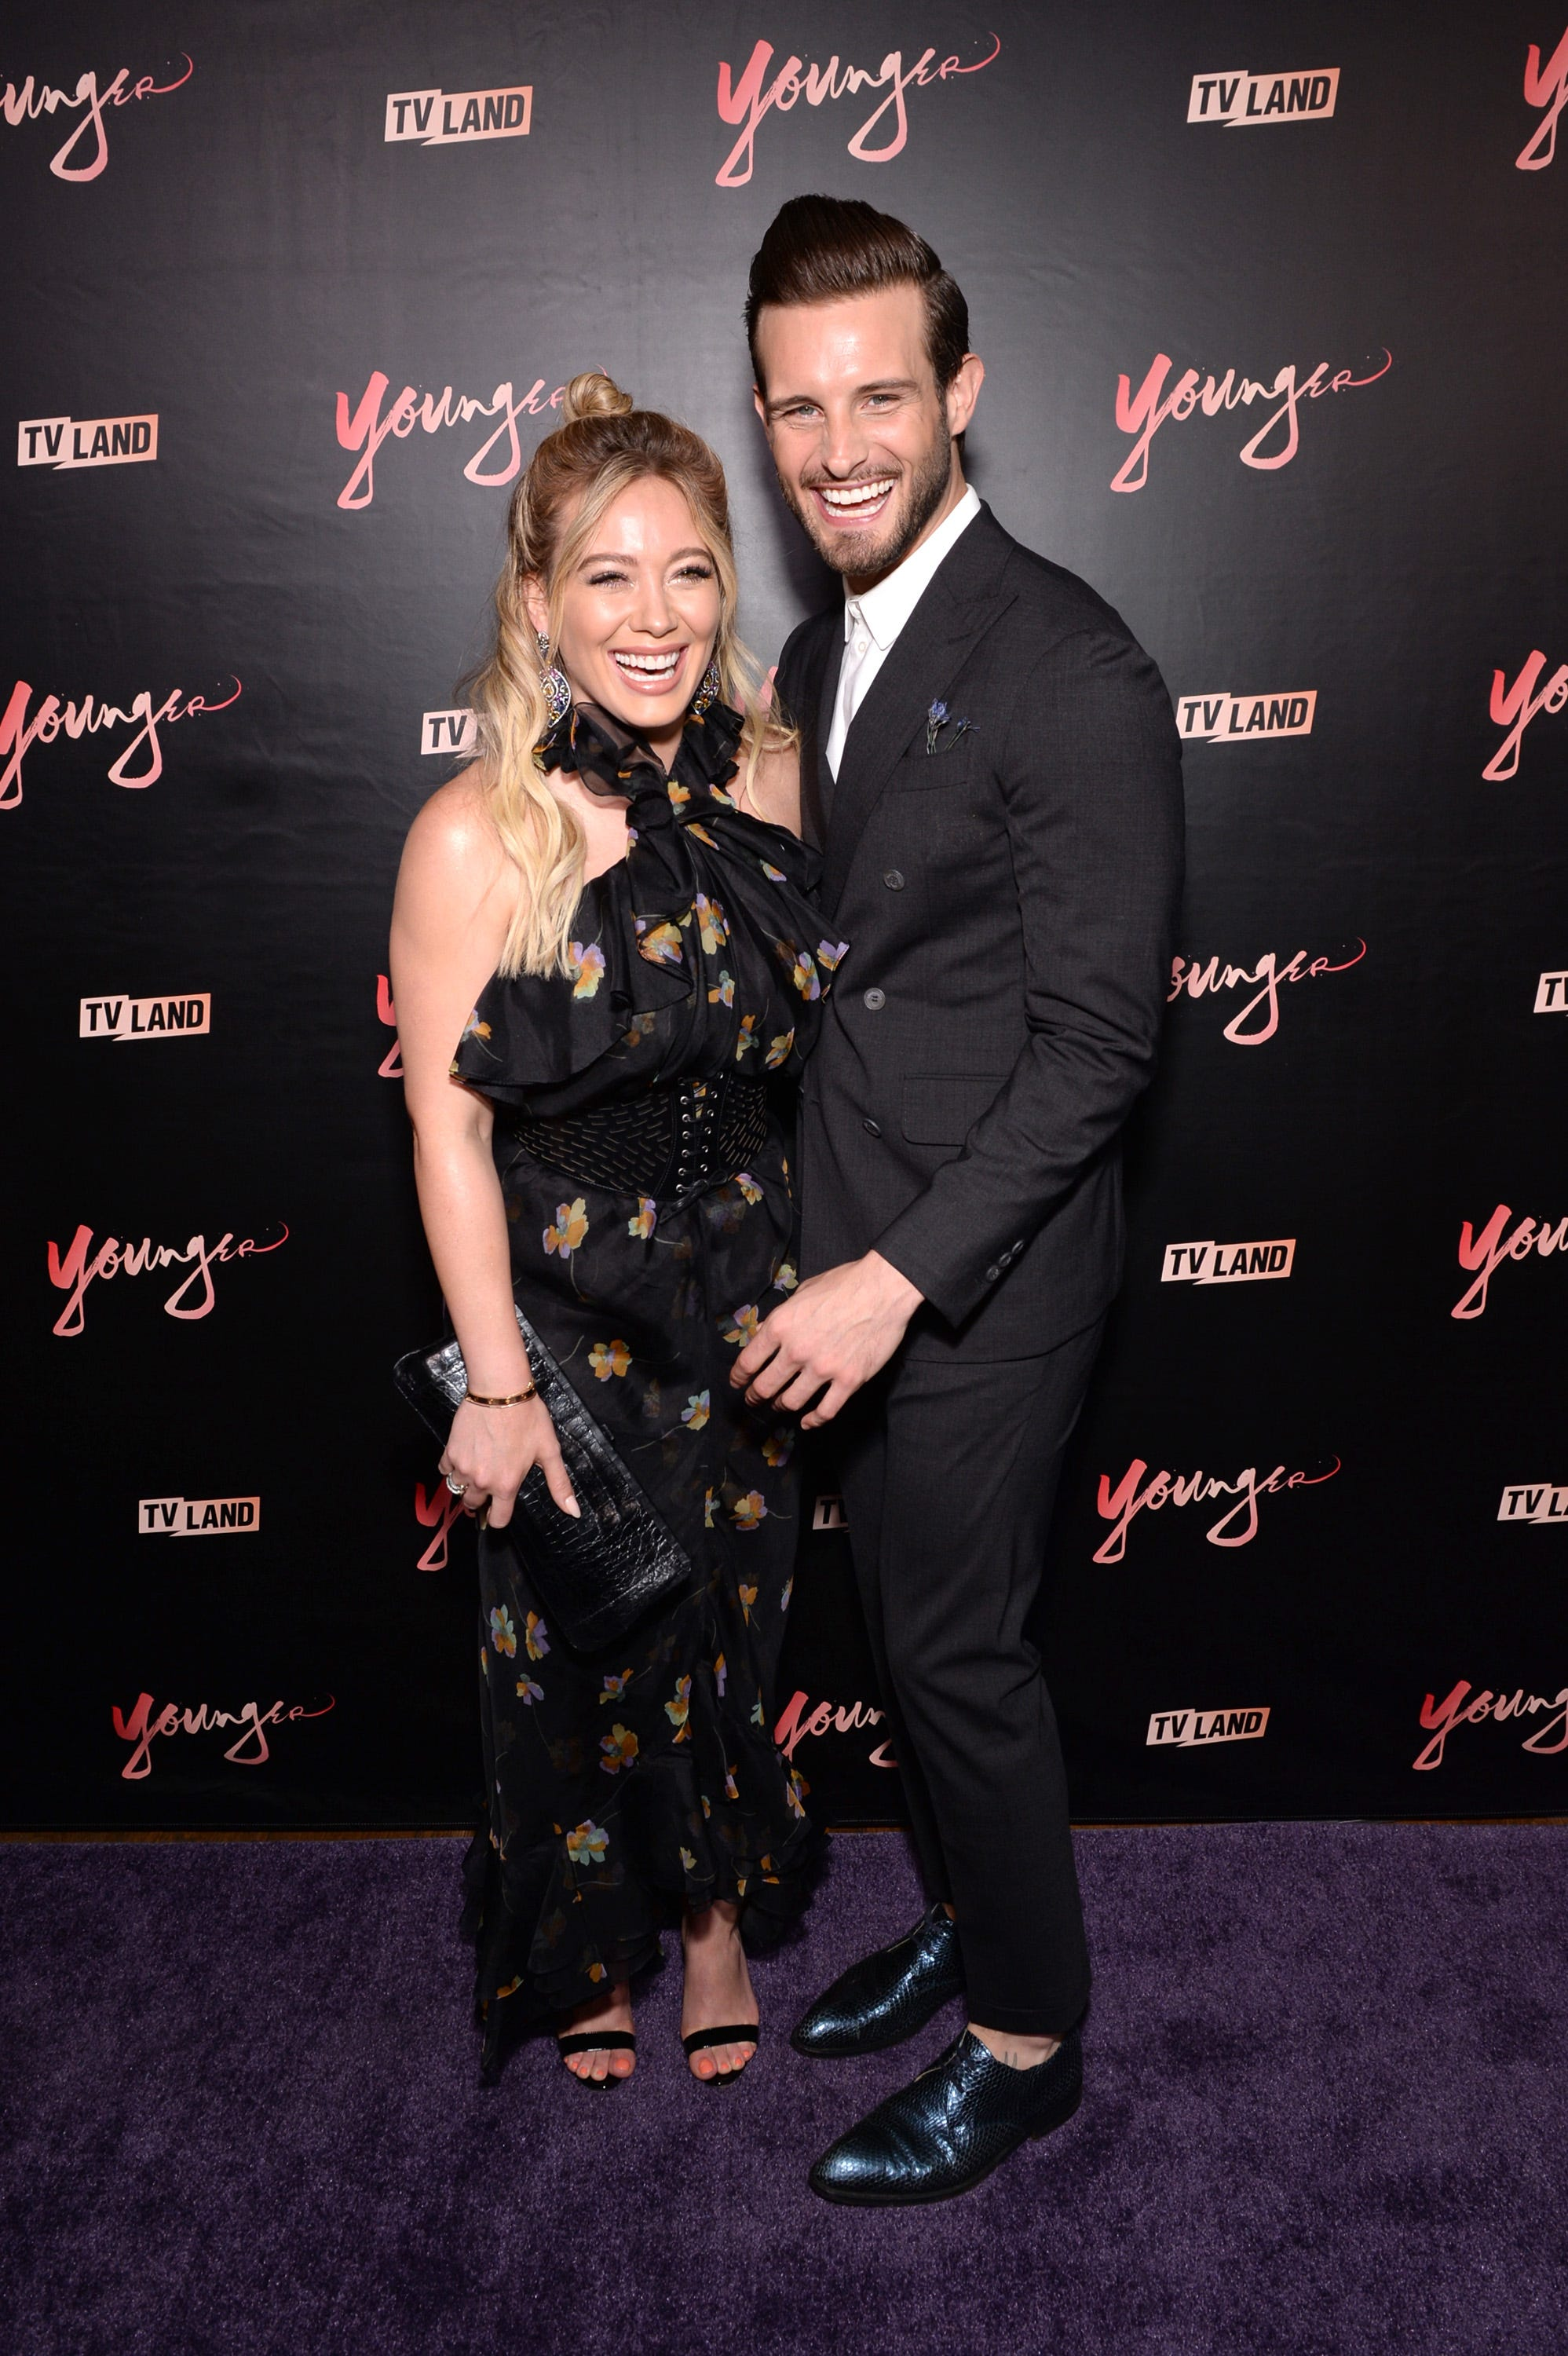 Hilary Duff's 'Younger' co-star Nico Tortorella drinks her breast milk